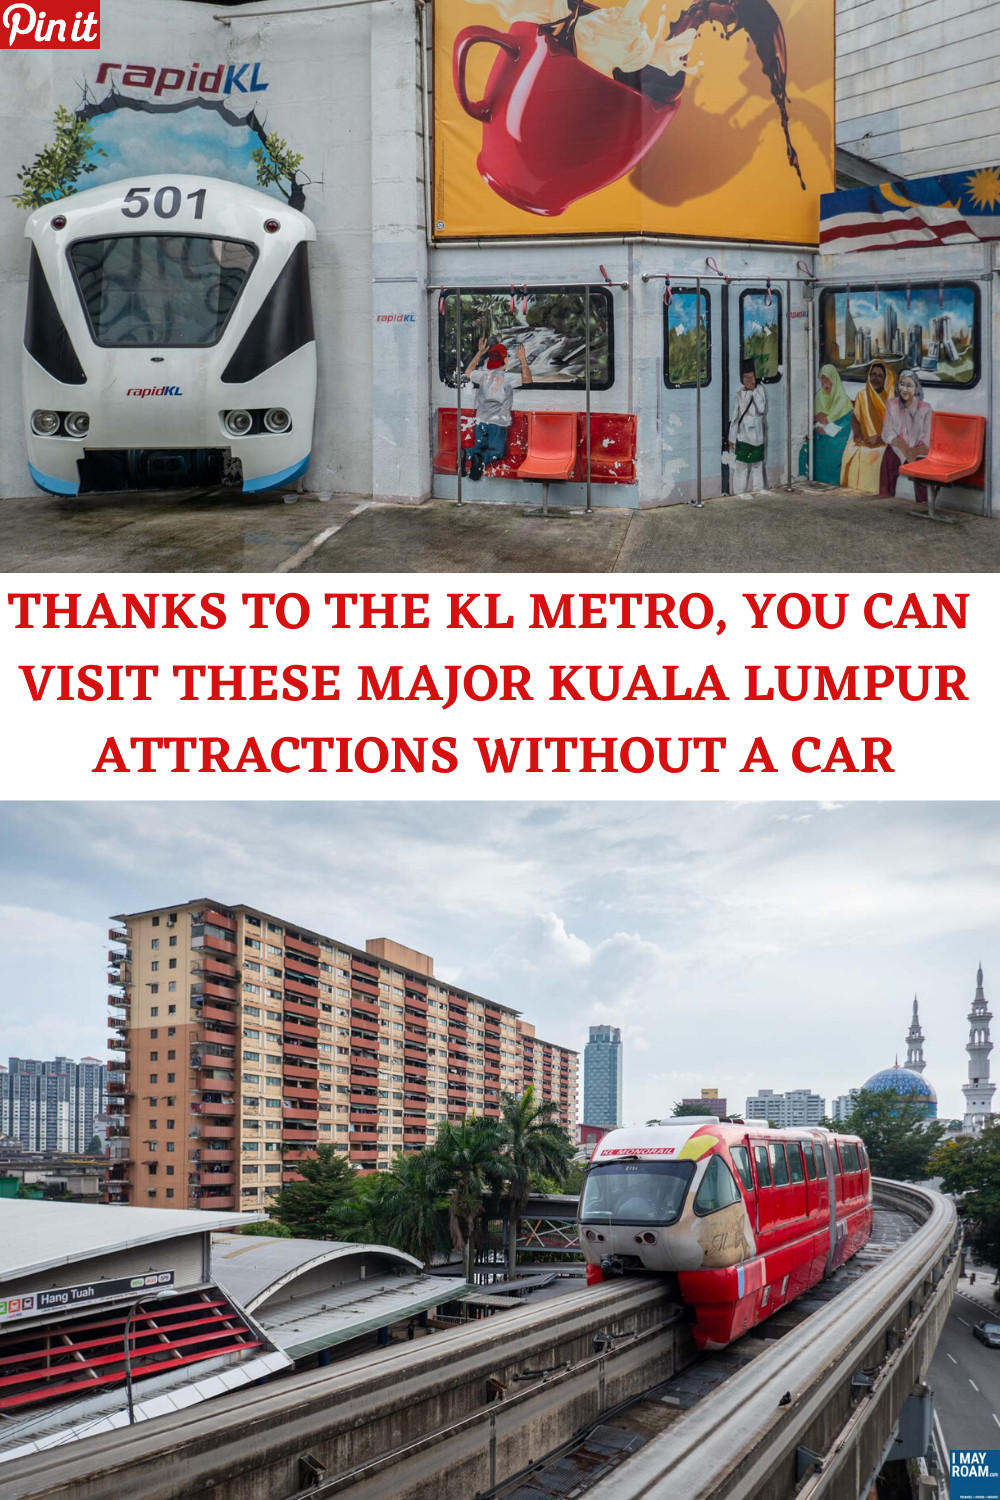 PINTEREST THANKS TO THE KL METRO YOU CAN NOW VISIT THESE MAJOR KUALA LUMPUR ATTRACTIONS WITHOUT A CAR